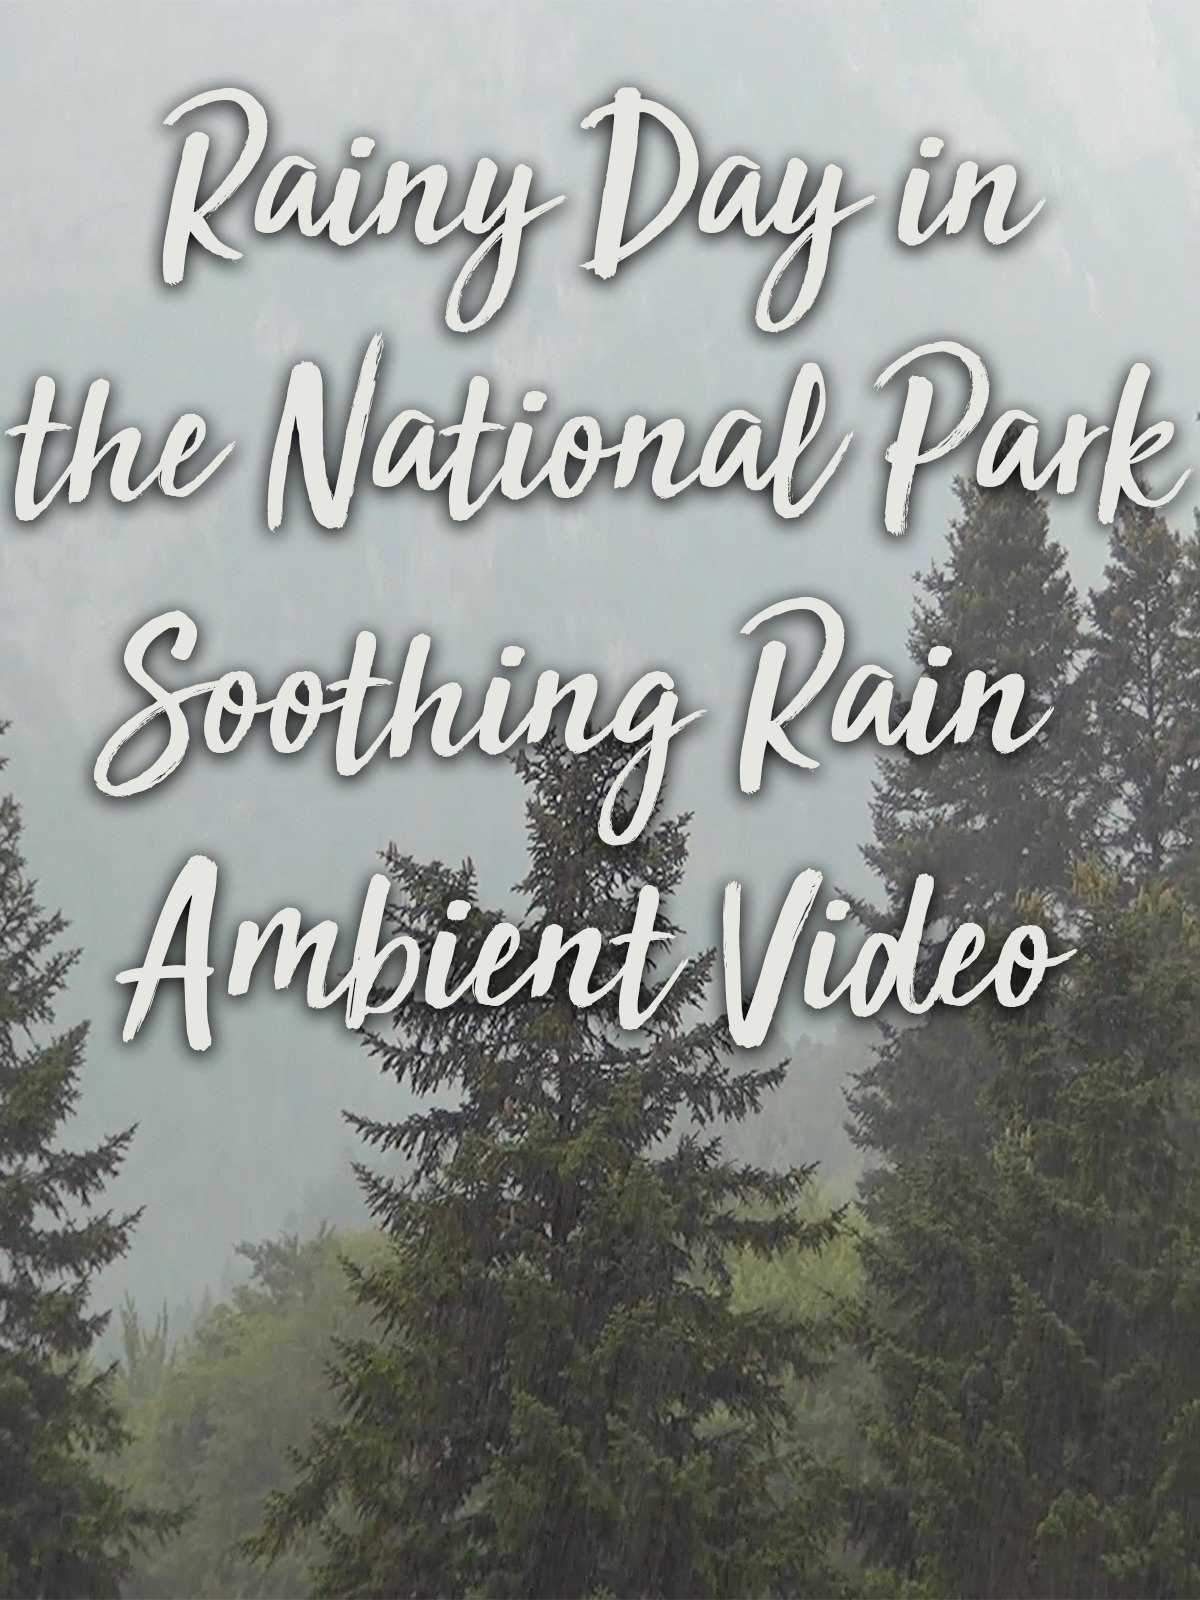 Rainy Day in the National Park Soothing Rain Ambient Video